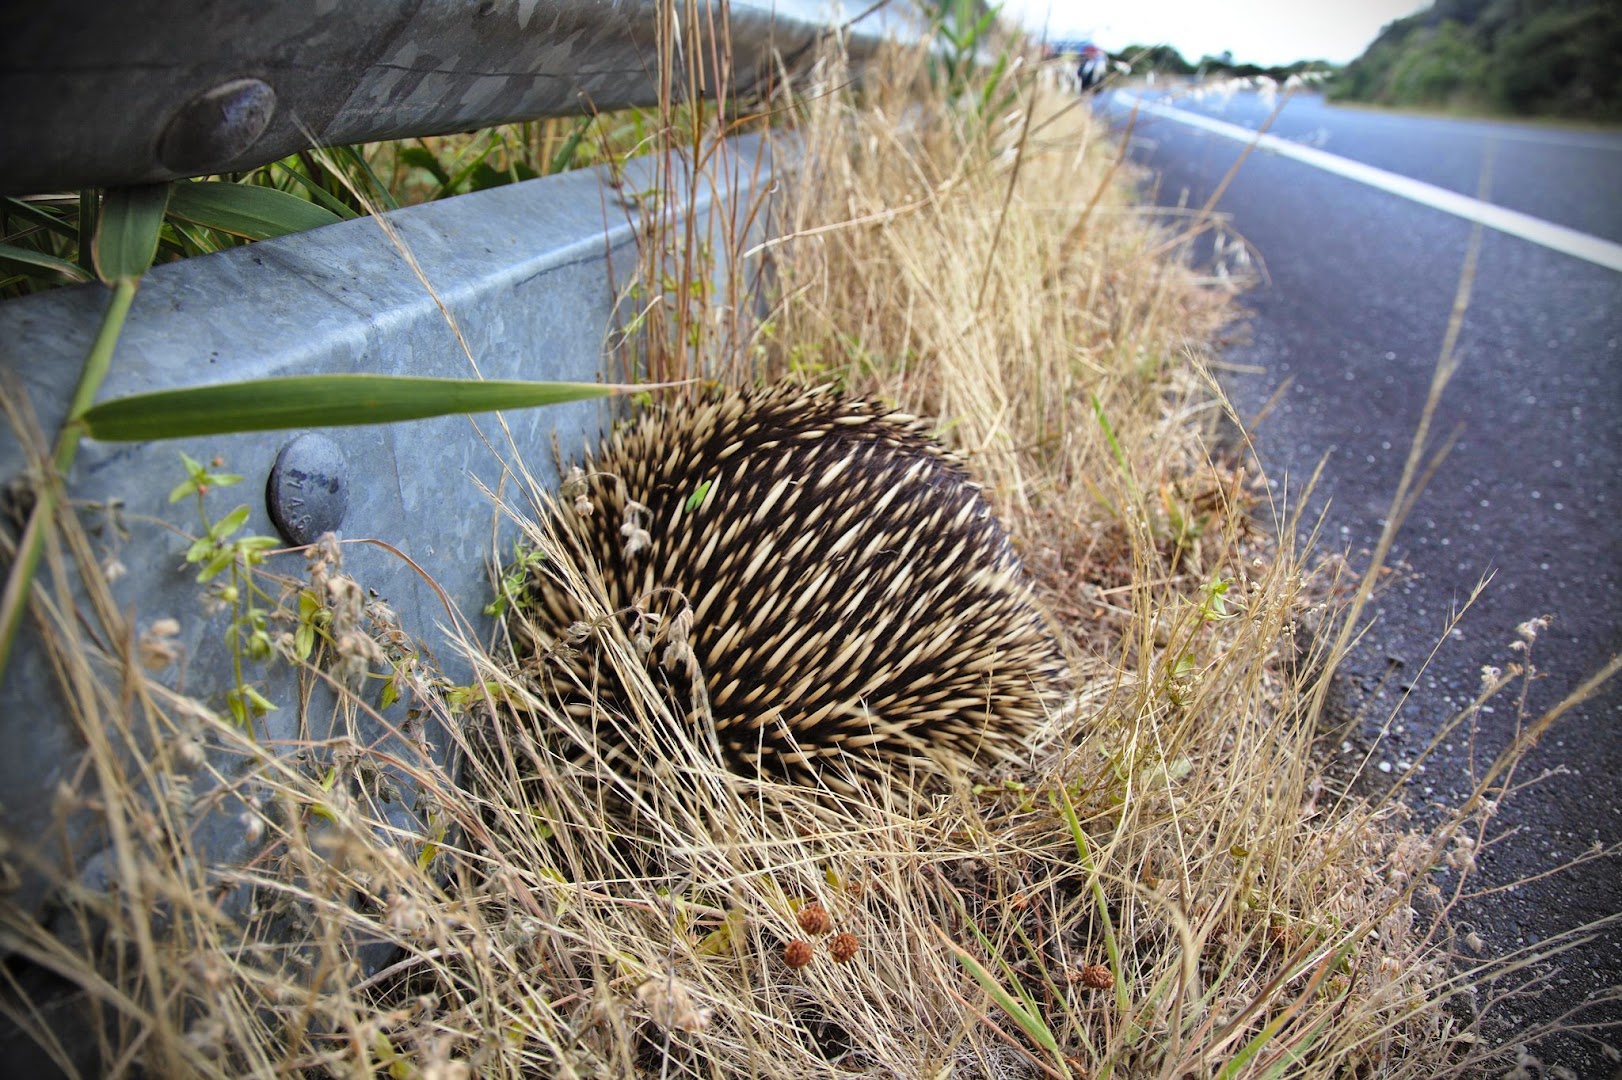 Echidna tries to escape the cars by digging under the railings